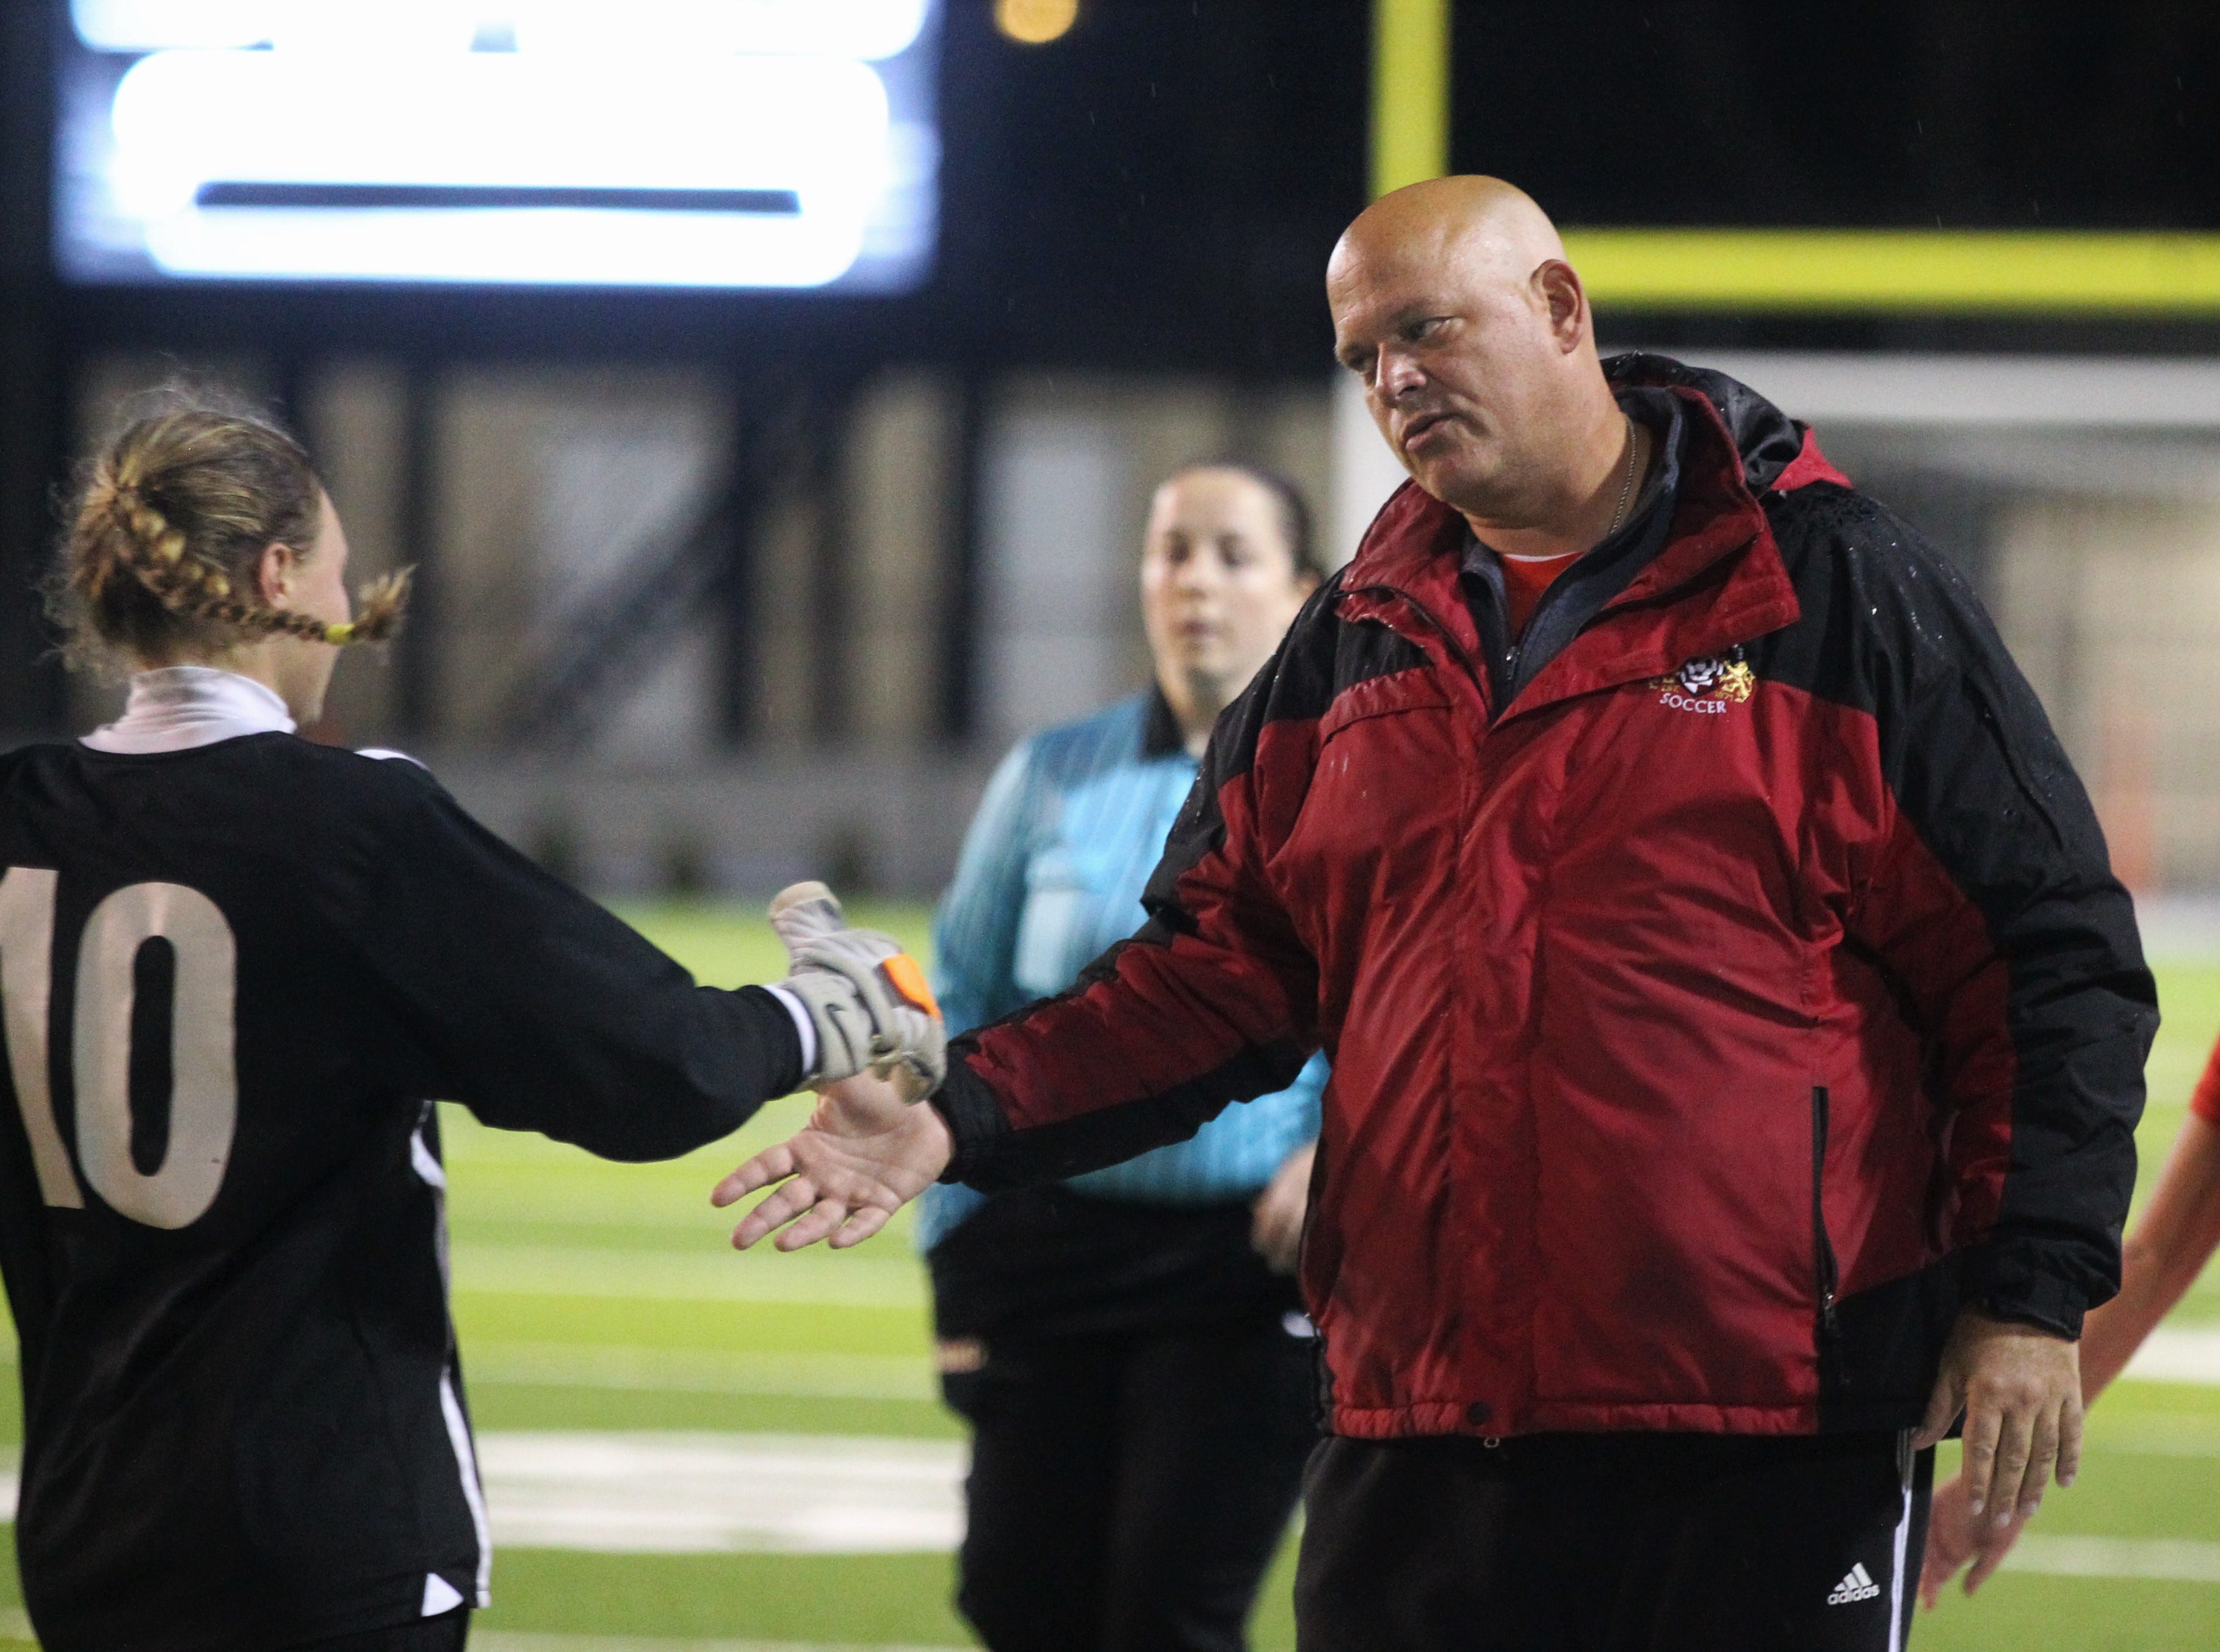 Leon goalies coach Lance Kirwin comes out to meet upset keeper Regan Hermeling at the first-half water break after an unfortunate goal, but Leon's girls soccer team rallied to beat Lincoln 2-1 in the District 2-4A championship on Feb. 1, 2019.